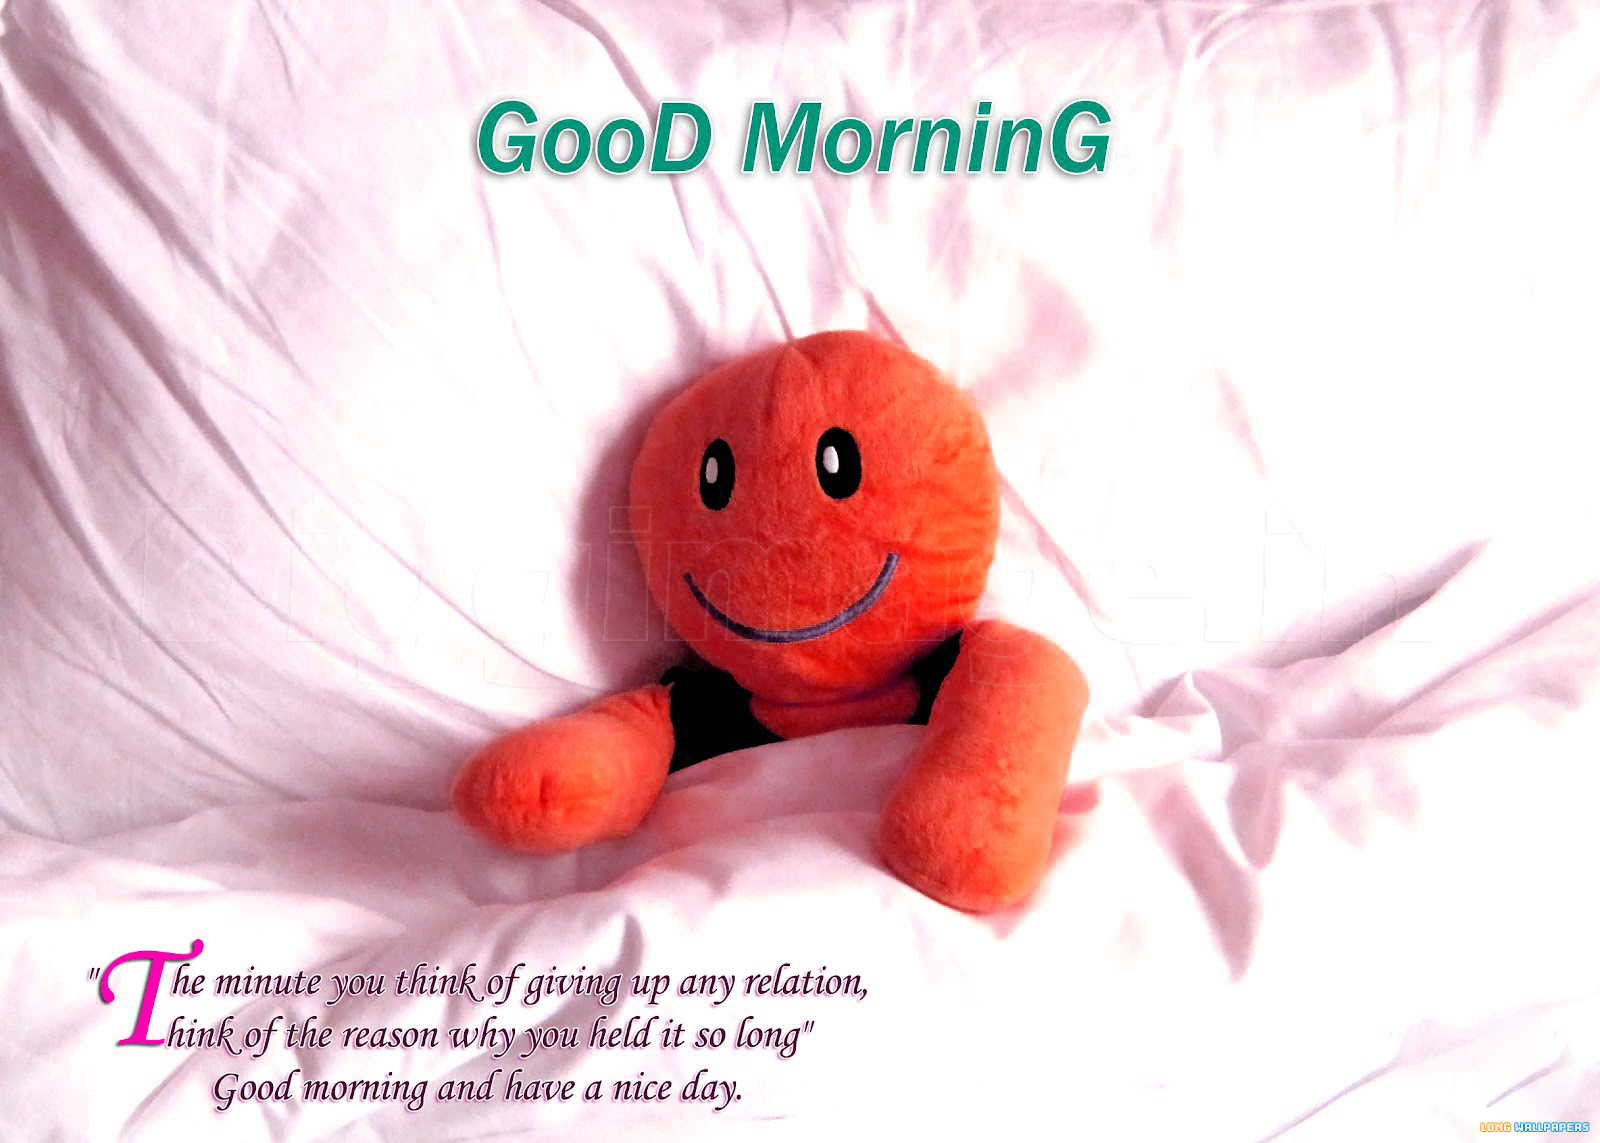 Good Morning My Love Quotes : good-morning-love-quotes-facebook